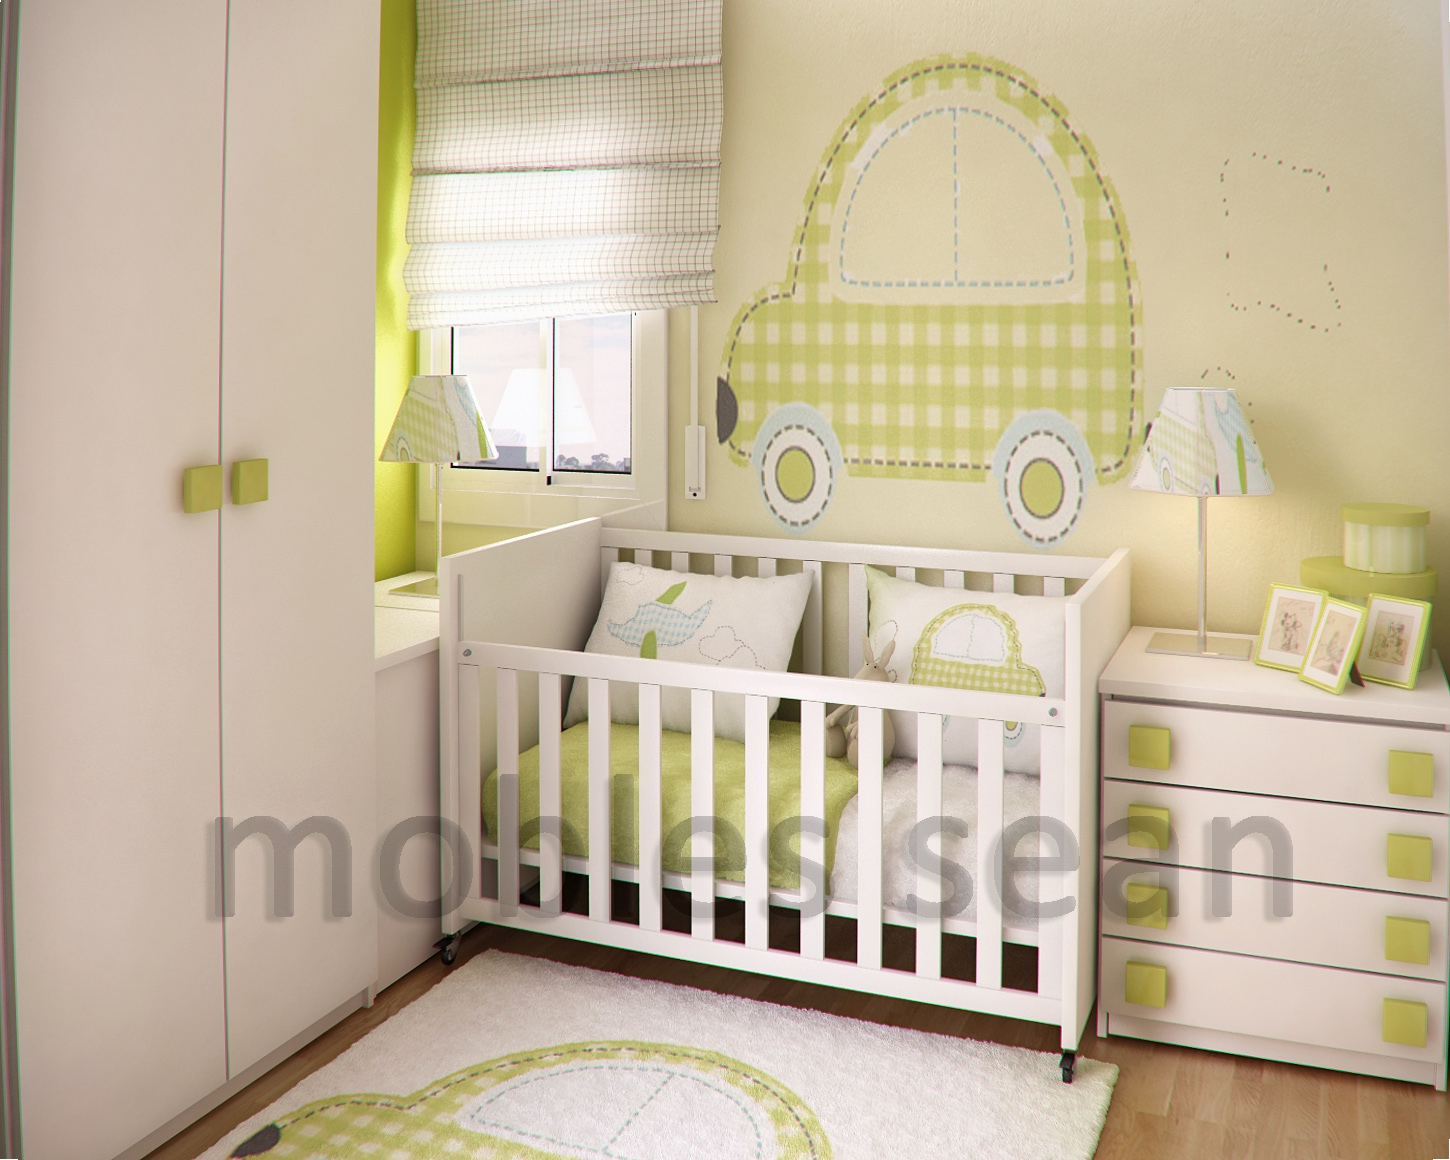 Space saving designs for small kids rooms for Nursery room ideas for small rooms